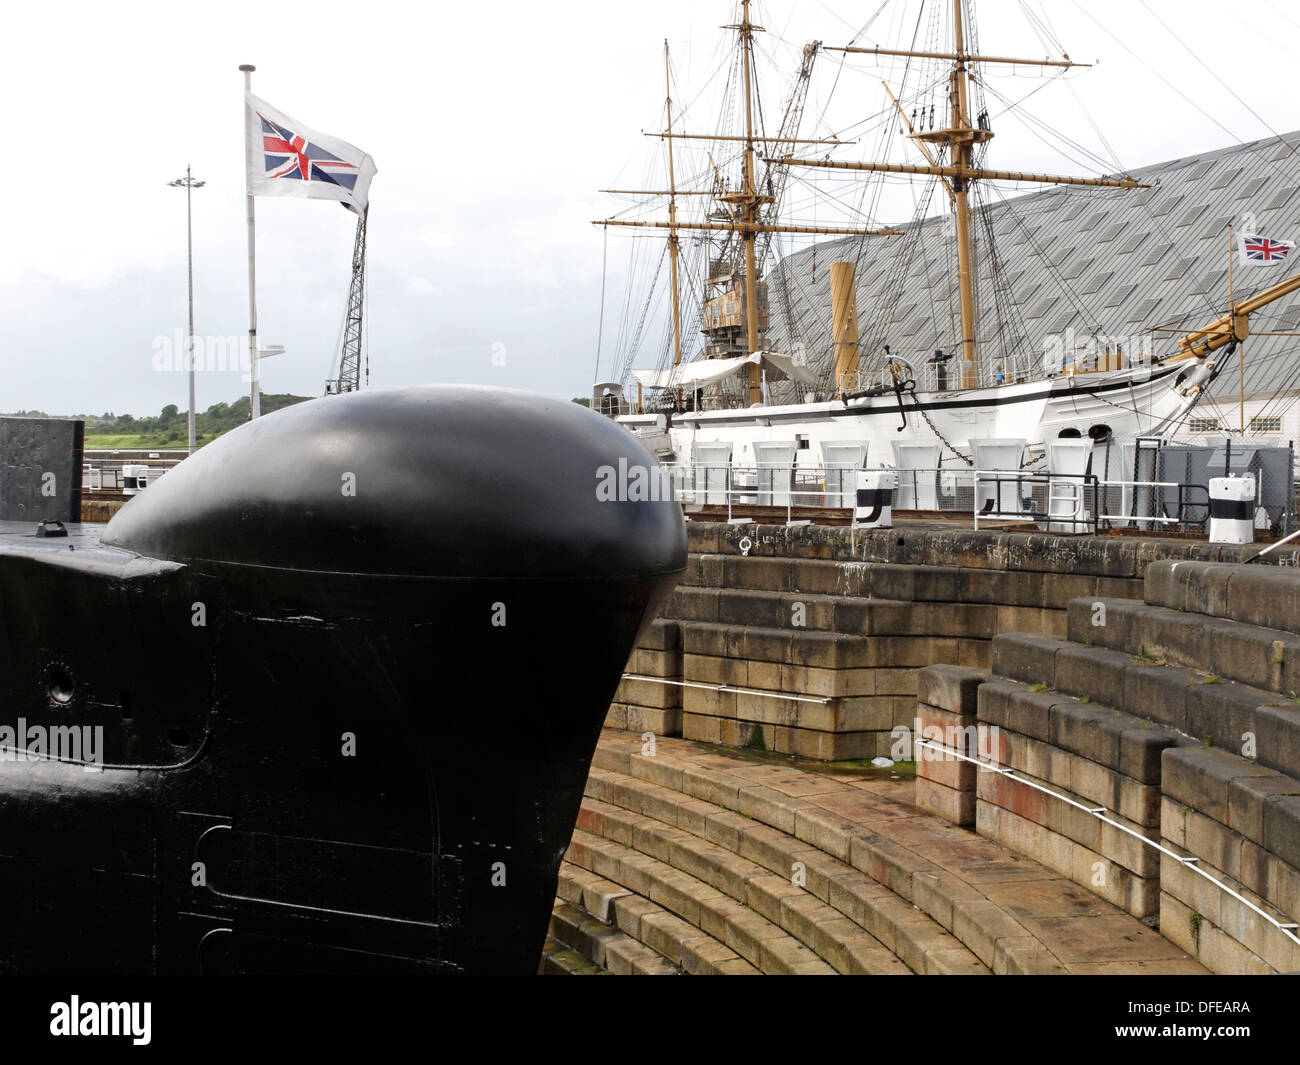 HMS Ocelot S17 was an Oberon-class diesel-electric submarine laid down by HM Dockyard at Chatham in Kent on 17 November 1960 - Stock Image